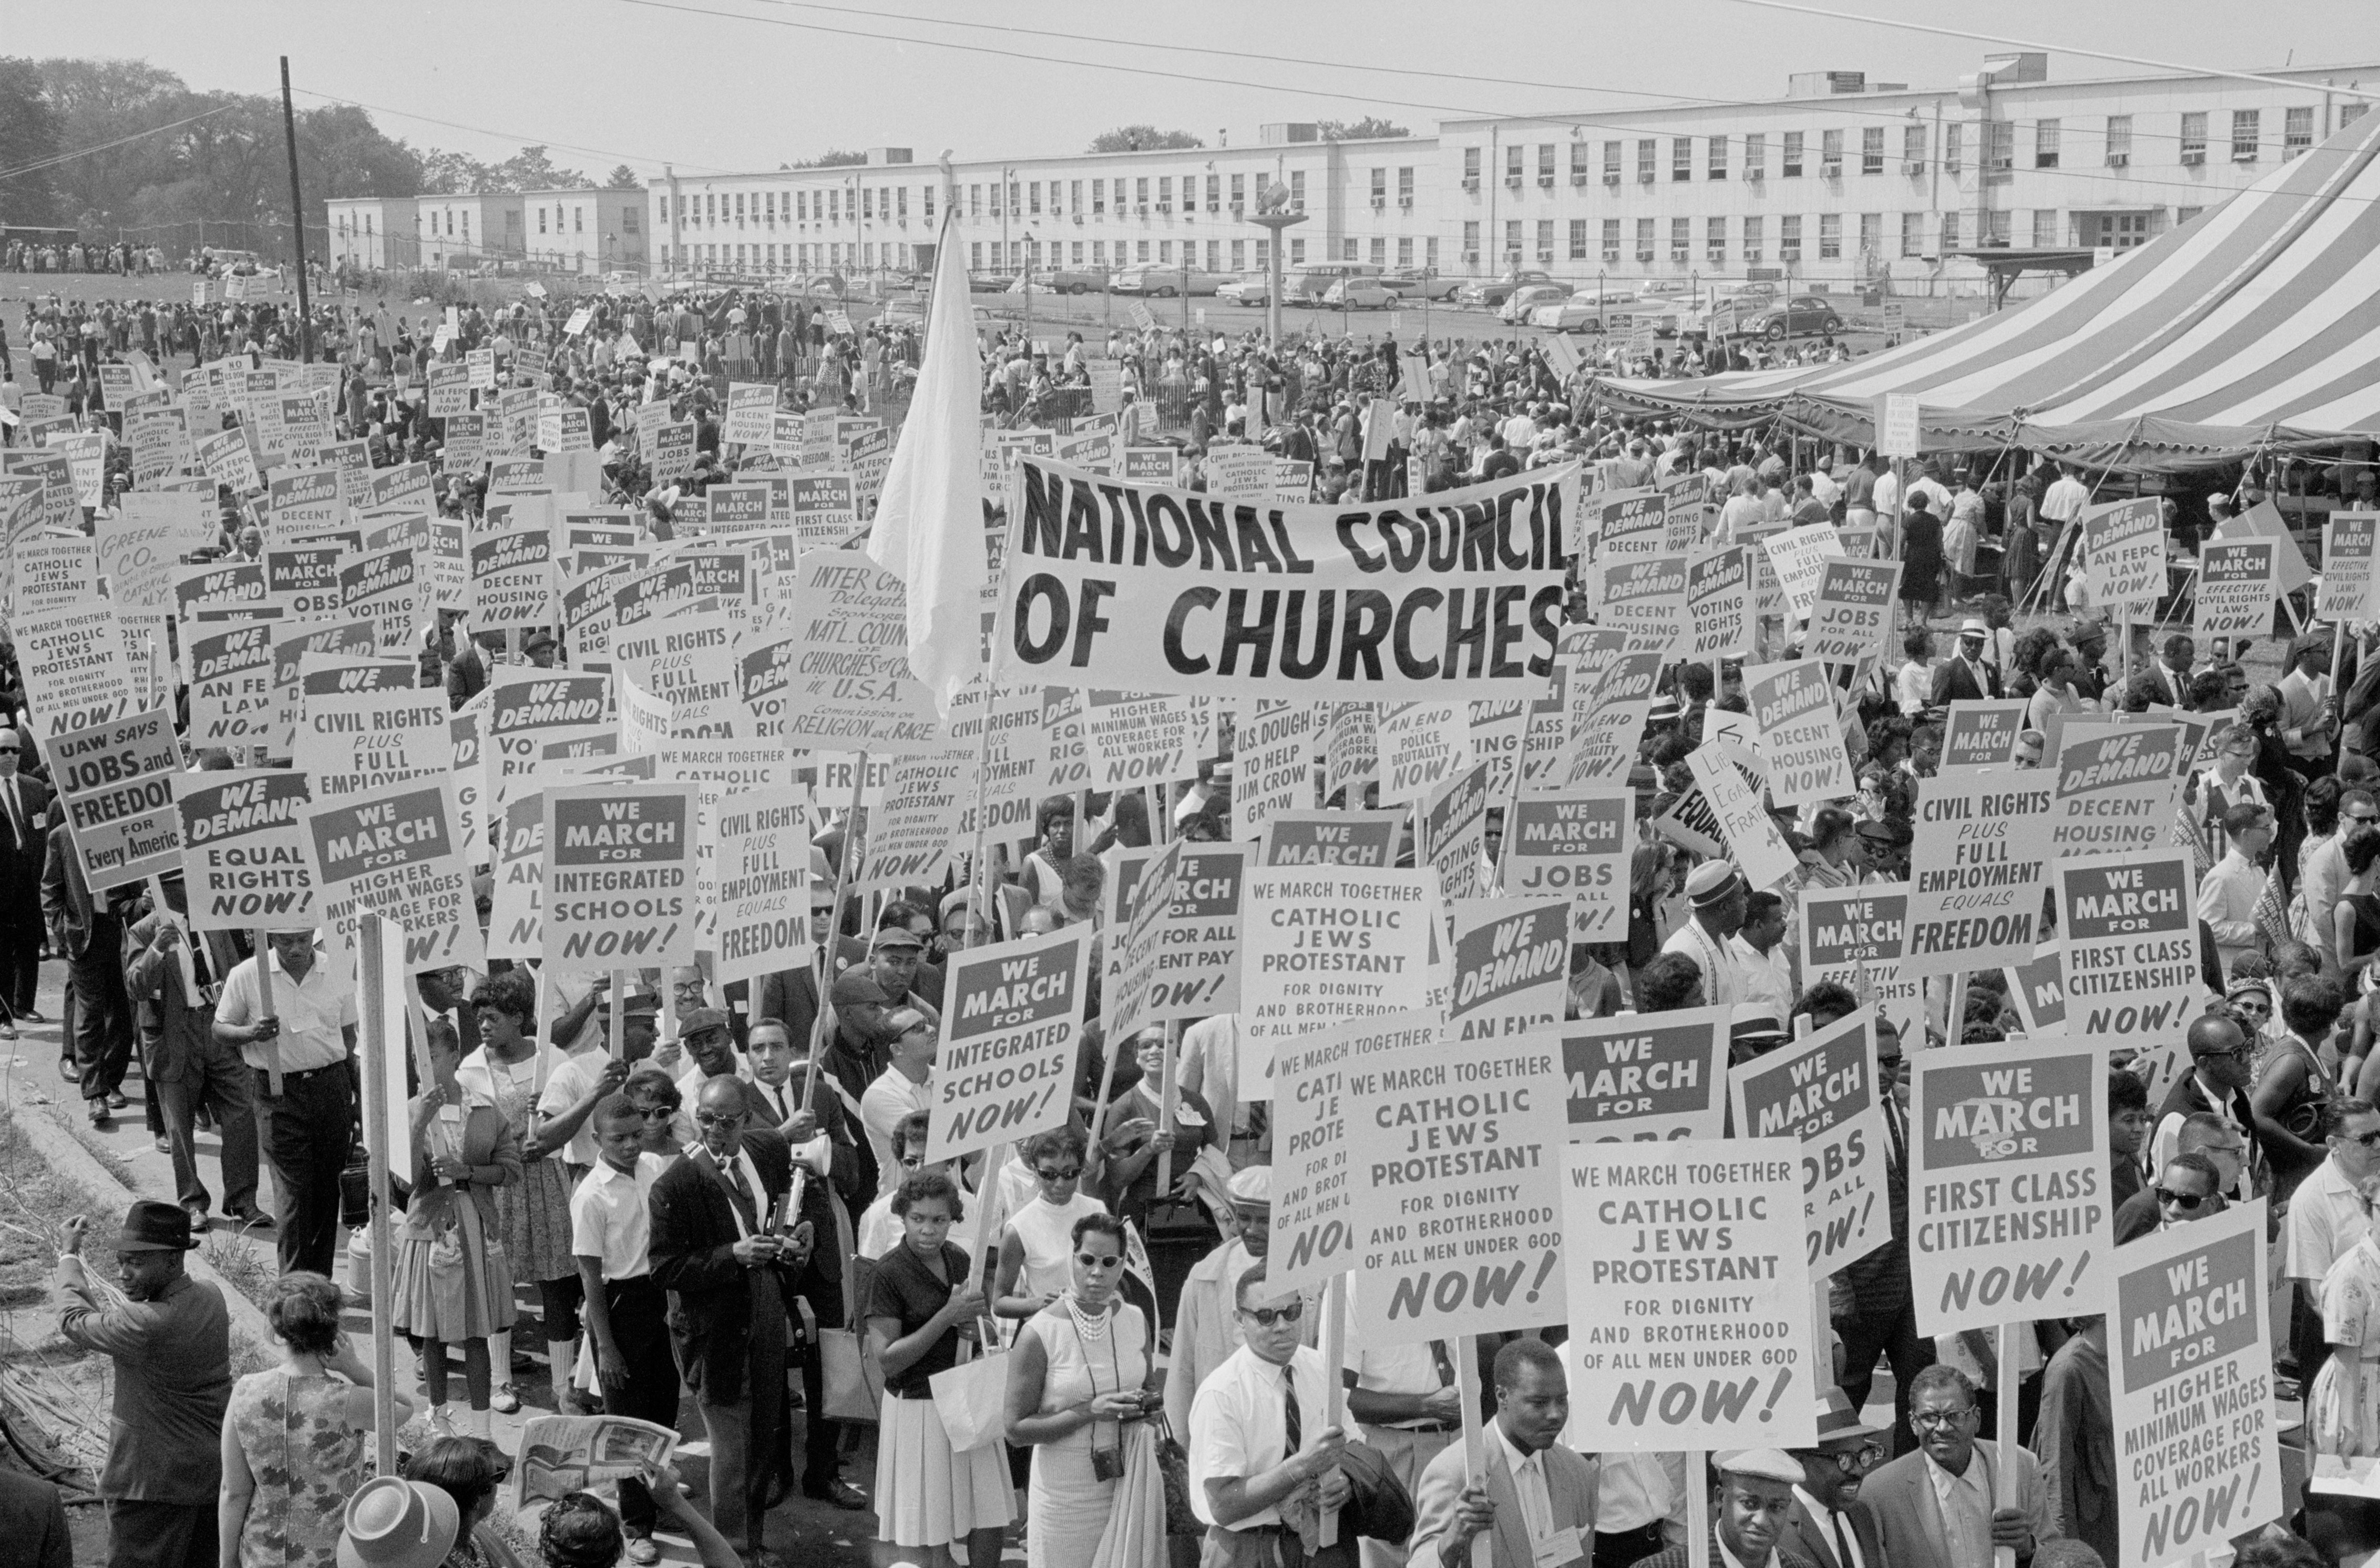 Marchers, signs, and a tent during the civil rights march on Washington D.C., in this August 28, 1963 photograph courtesy of the Library of Congress. Photo by REUTERS/Library of Congress/Handout via Reuters.